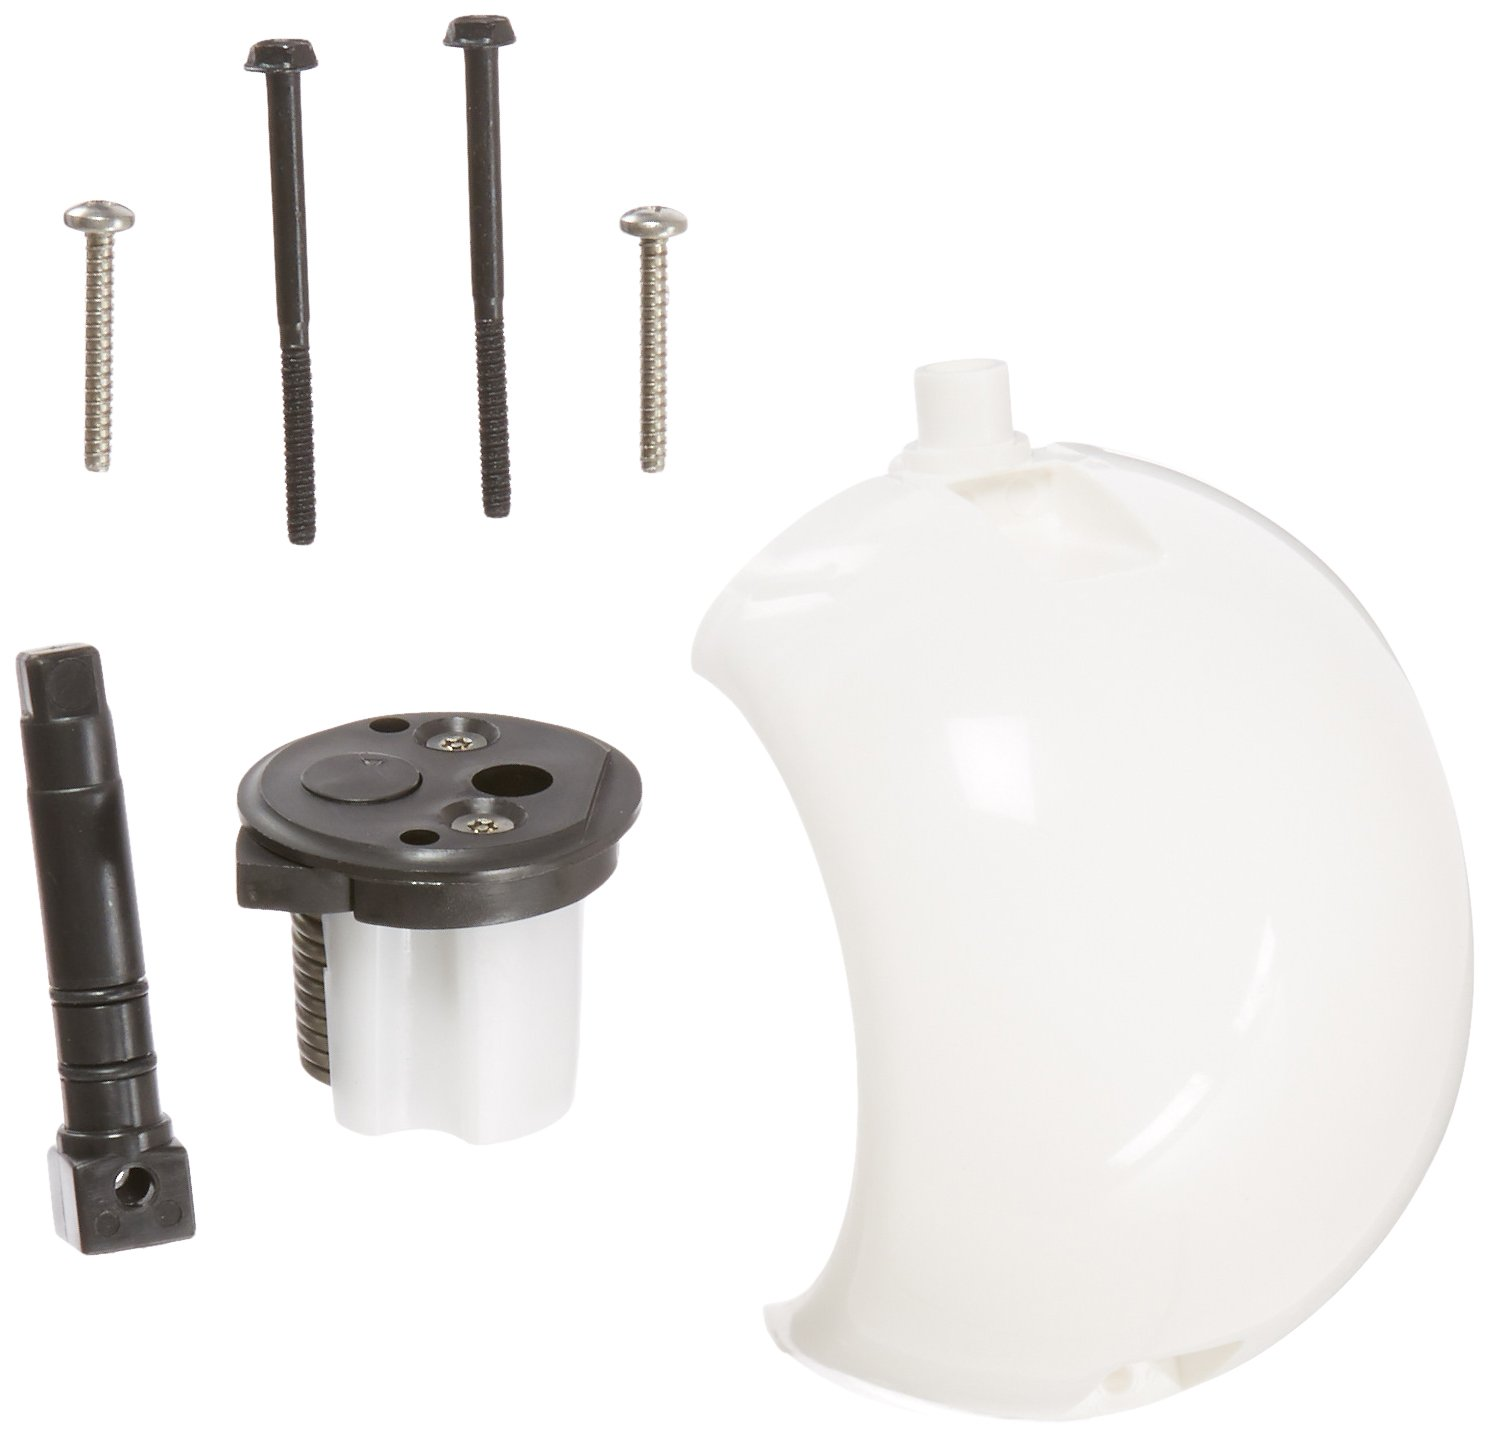 Dometic 385310681 Toilet Flush Ball and Shaft Kit